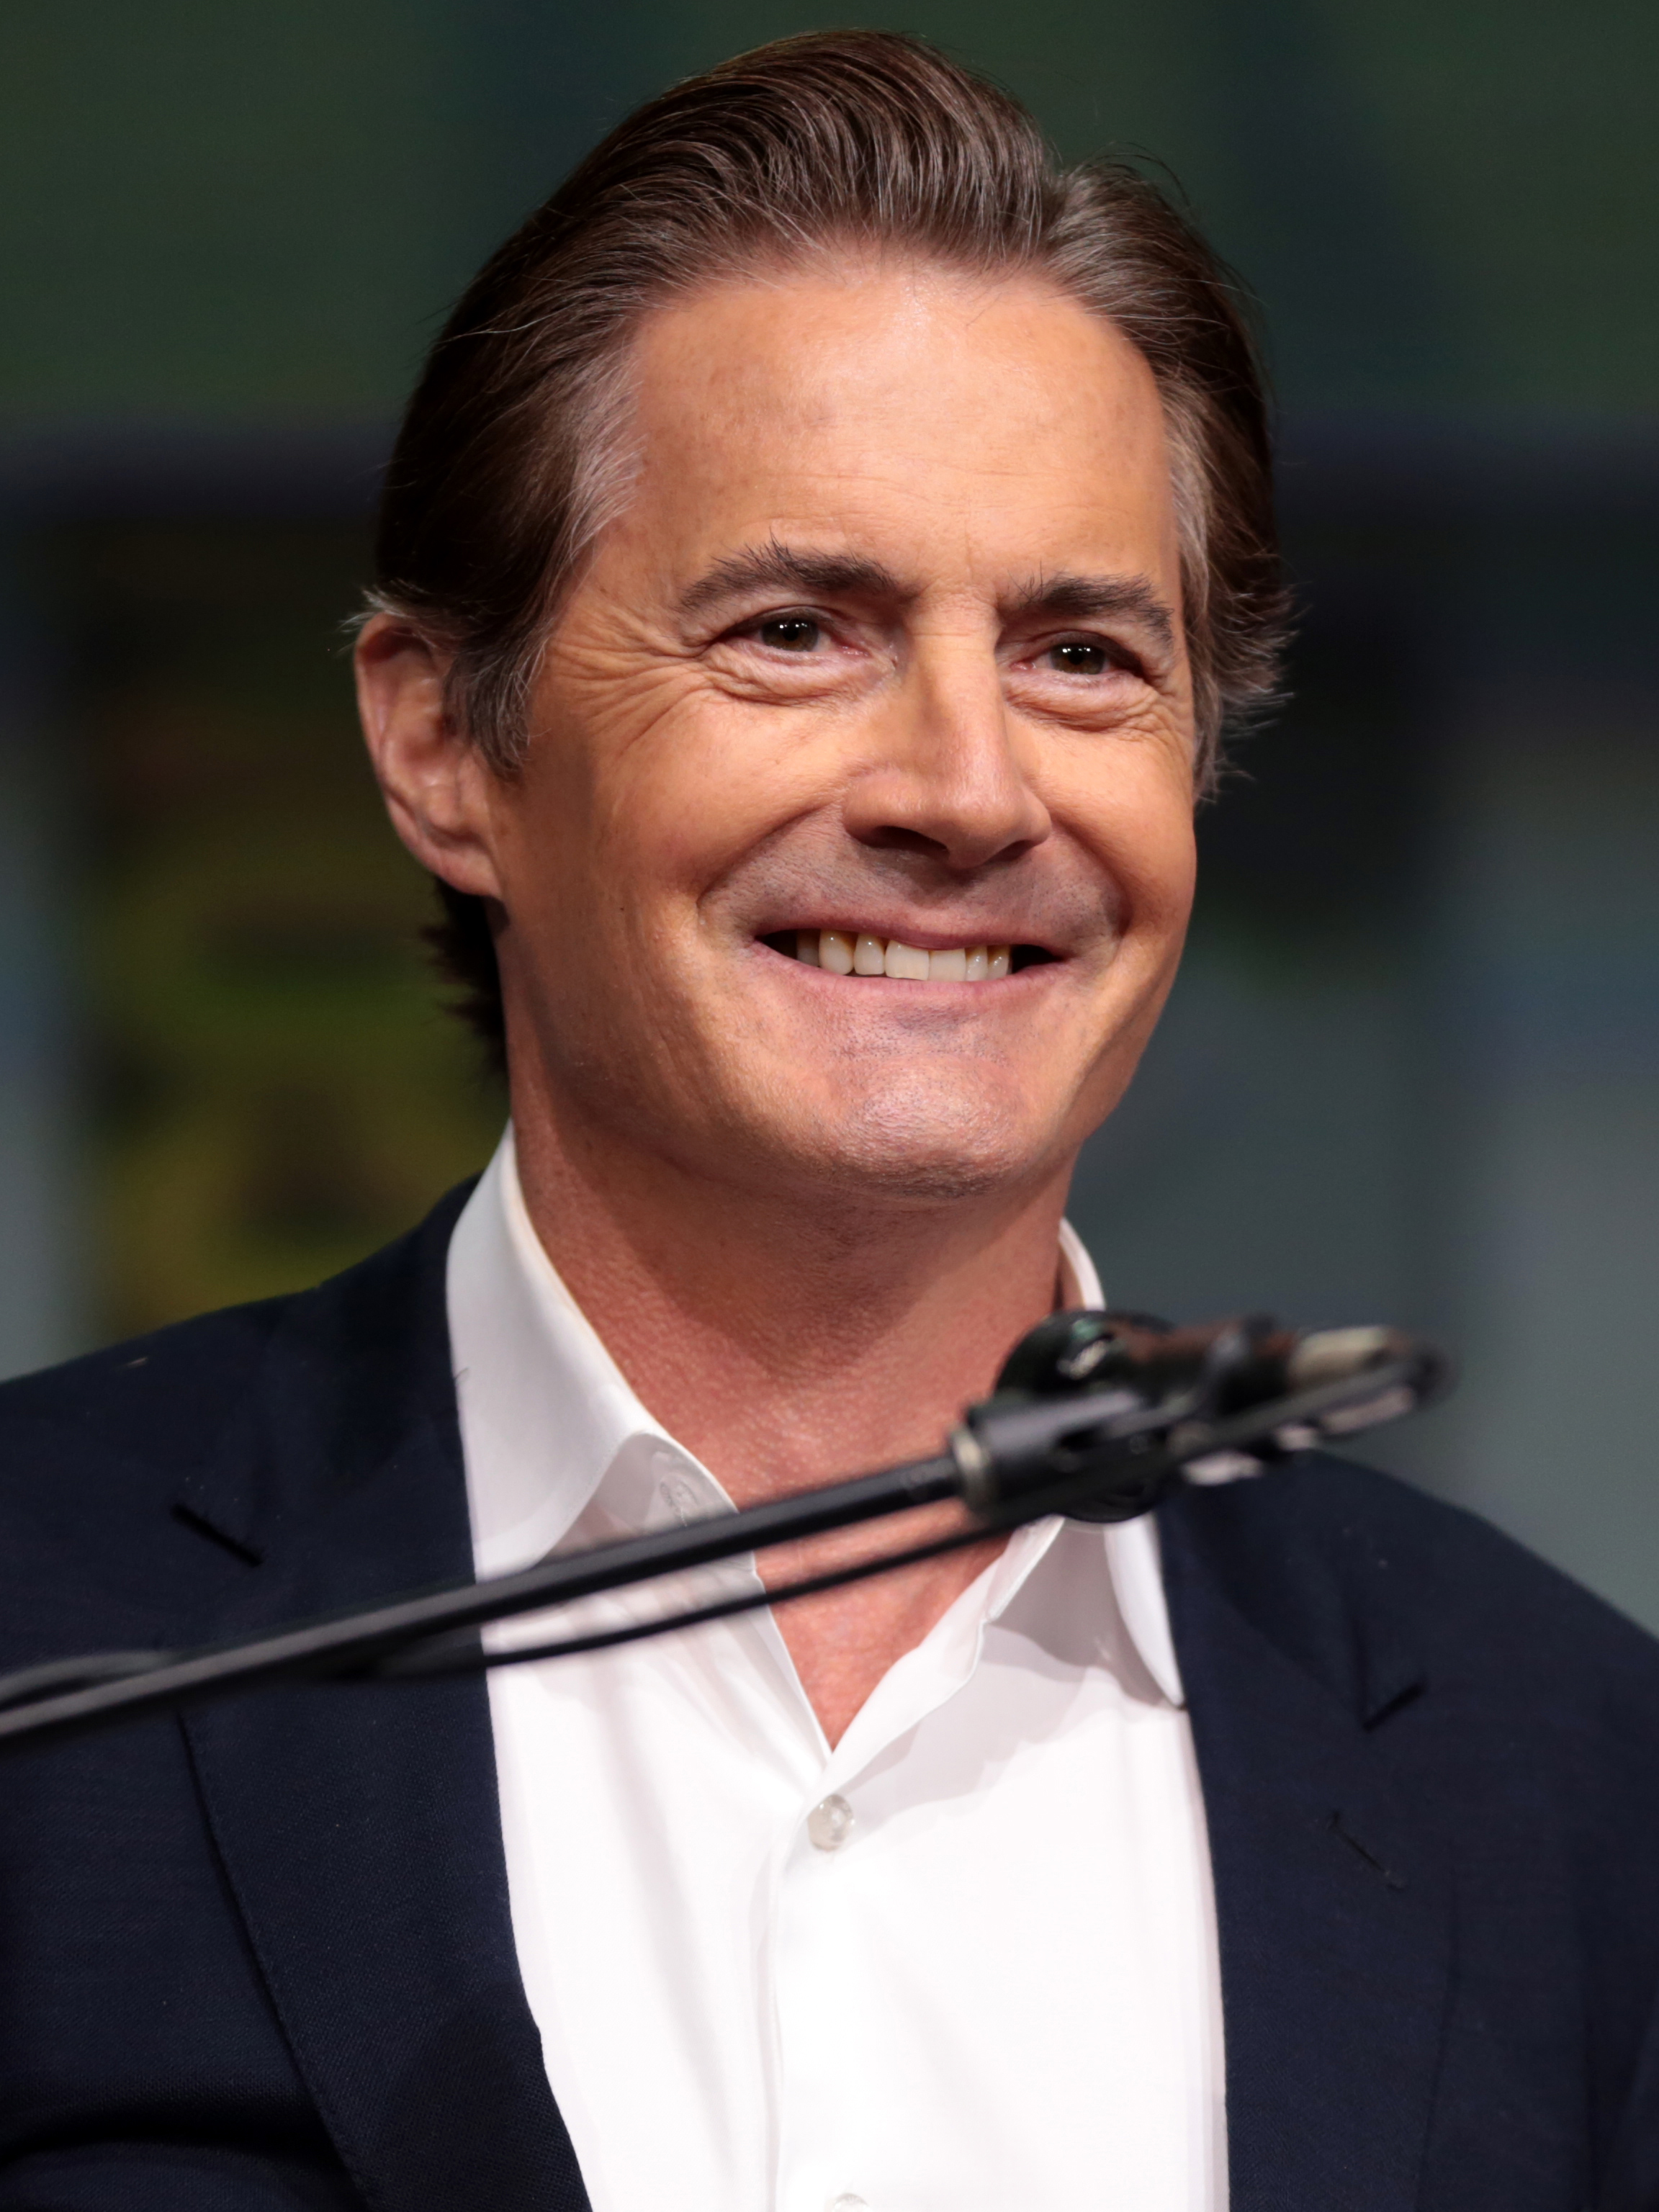 Something Actor kyle maclachlan charming message